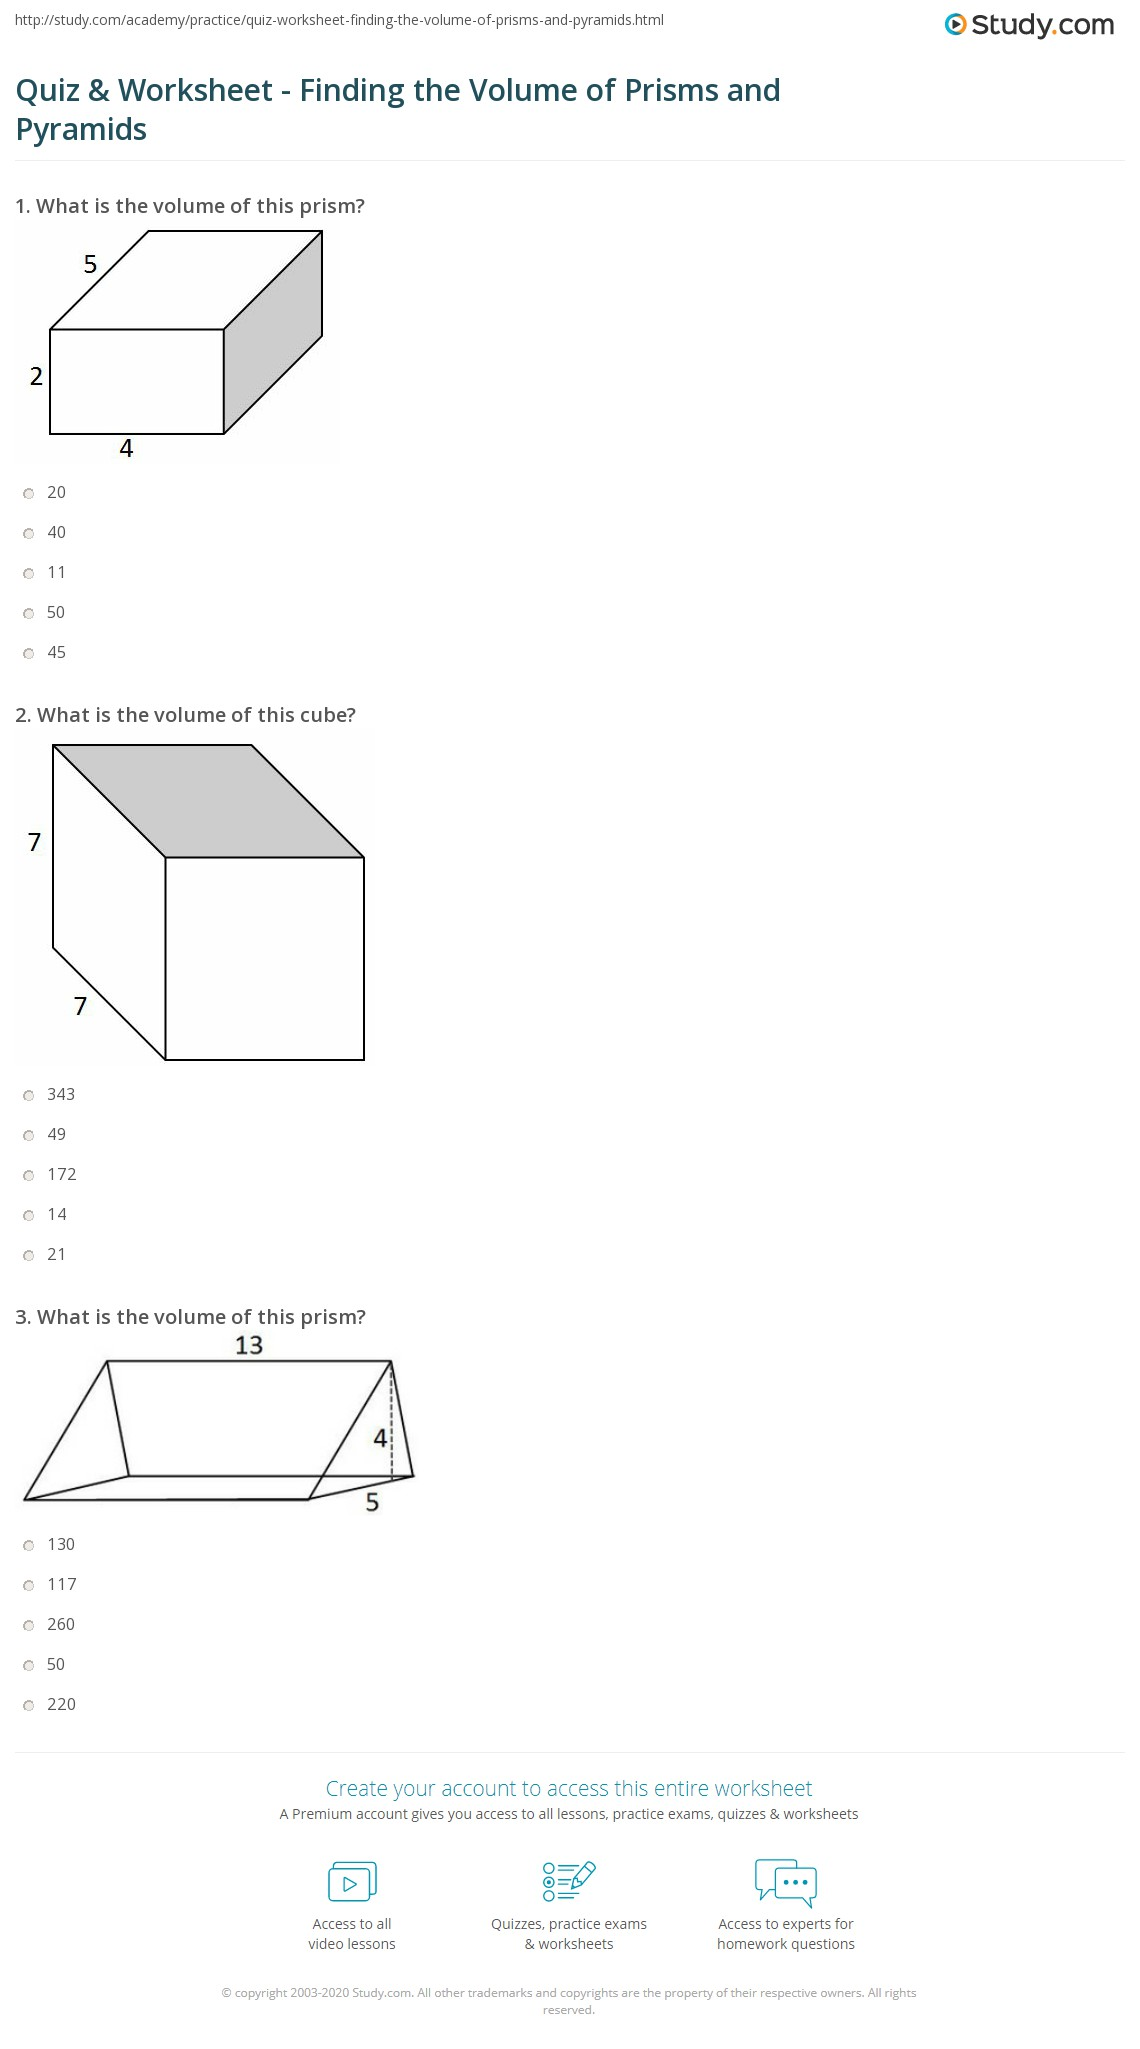 Quiz Worksheet Finding The Volume Of Prisms And